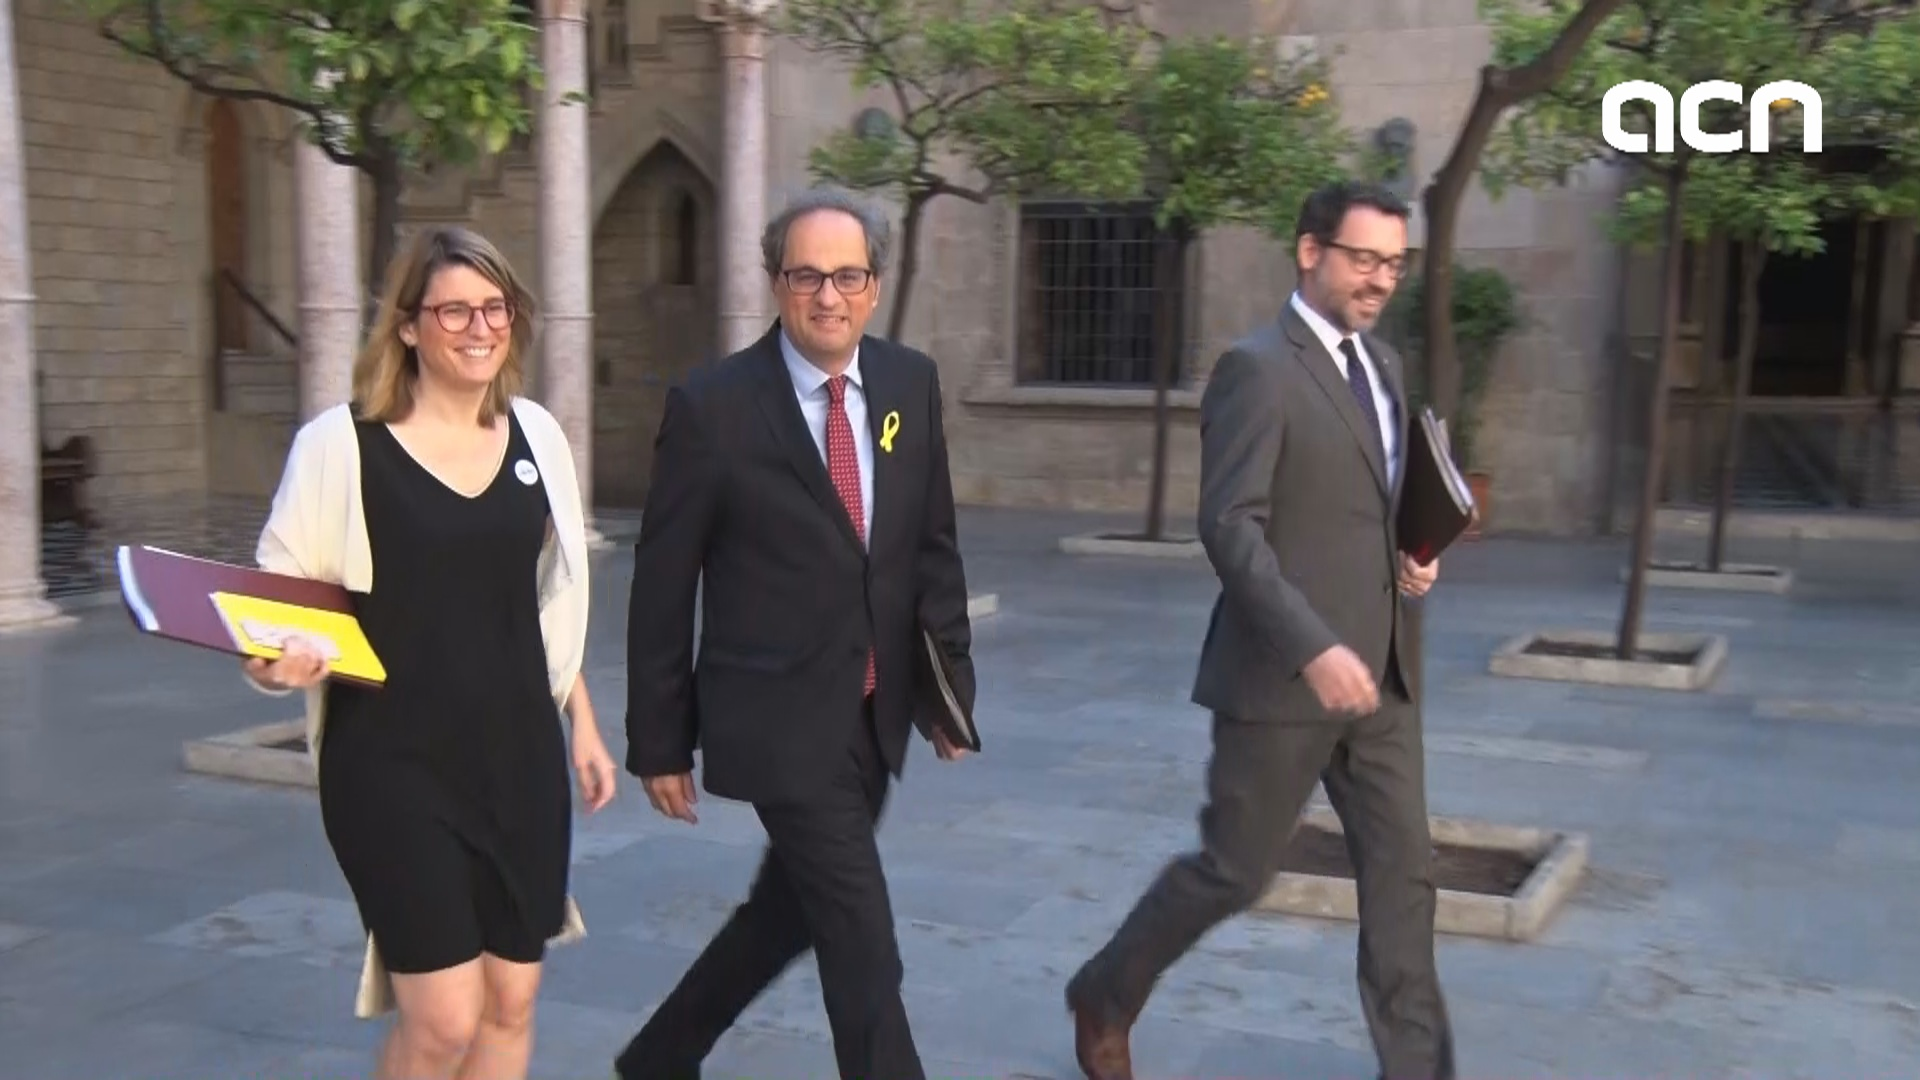 Mediterranean Games: Torra's attendance 'on hold' due to presence of Spain's king